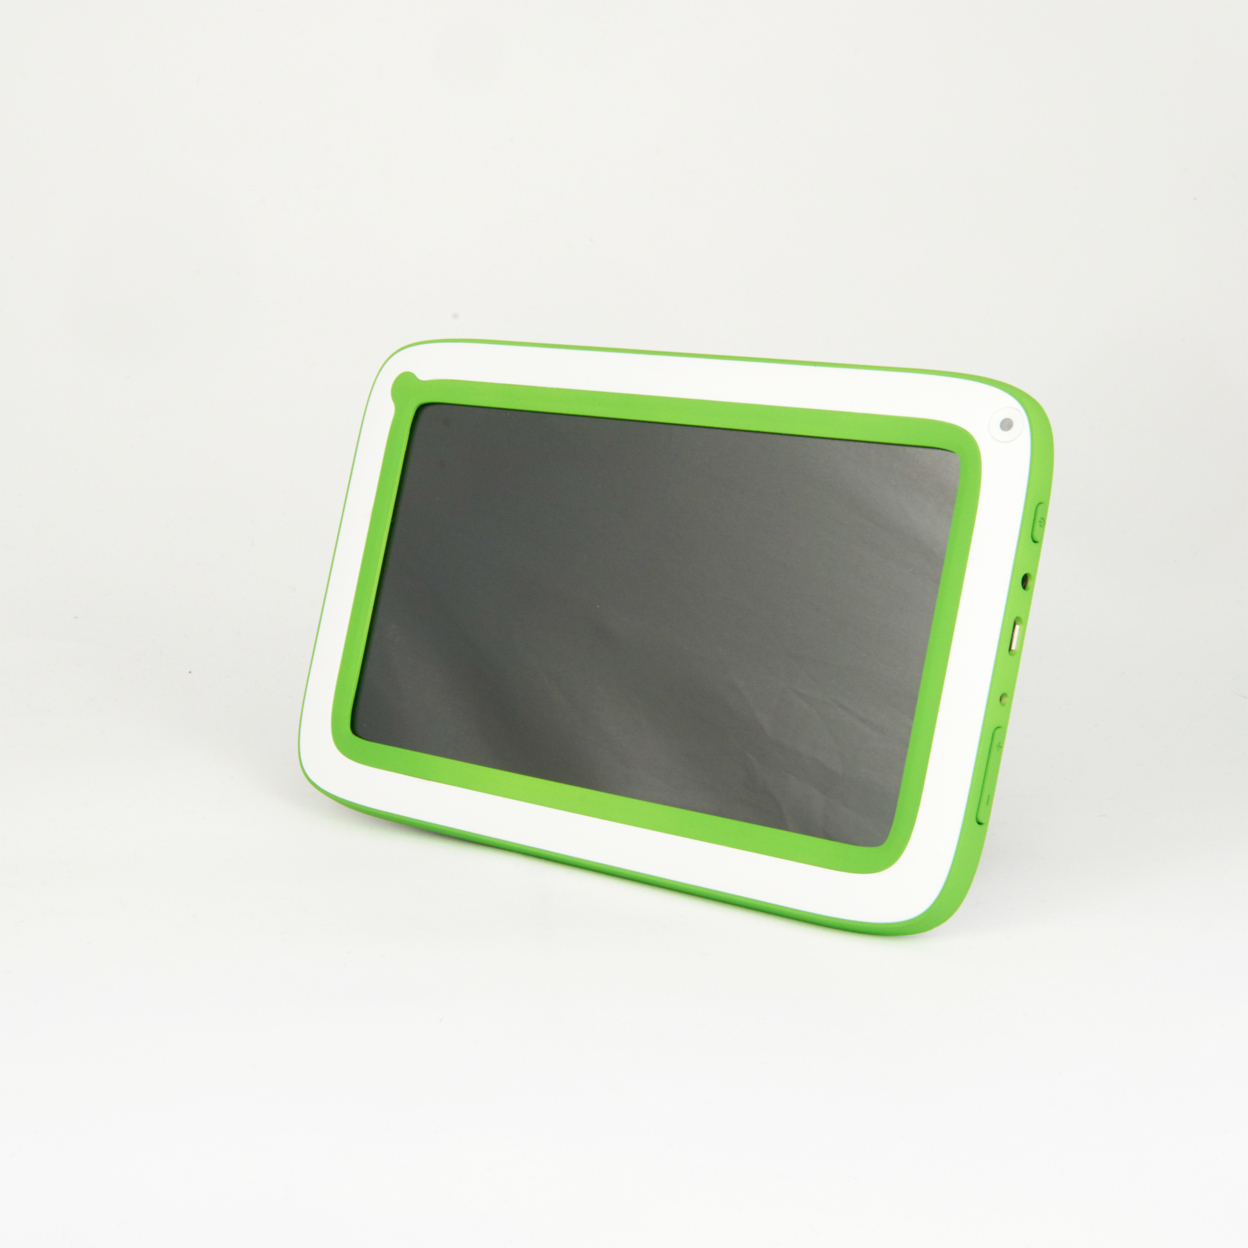 "EZ TABs 7"" Android Quadcore Kids Educational Tablet Green 5679f919493d6f2c2f8b4d4a"